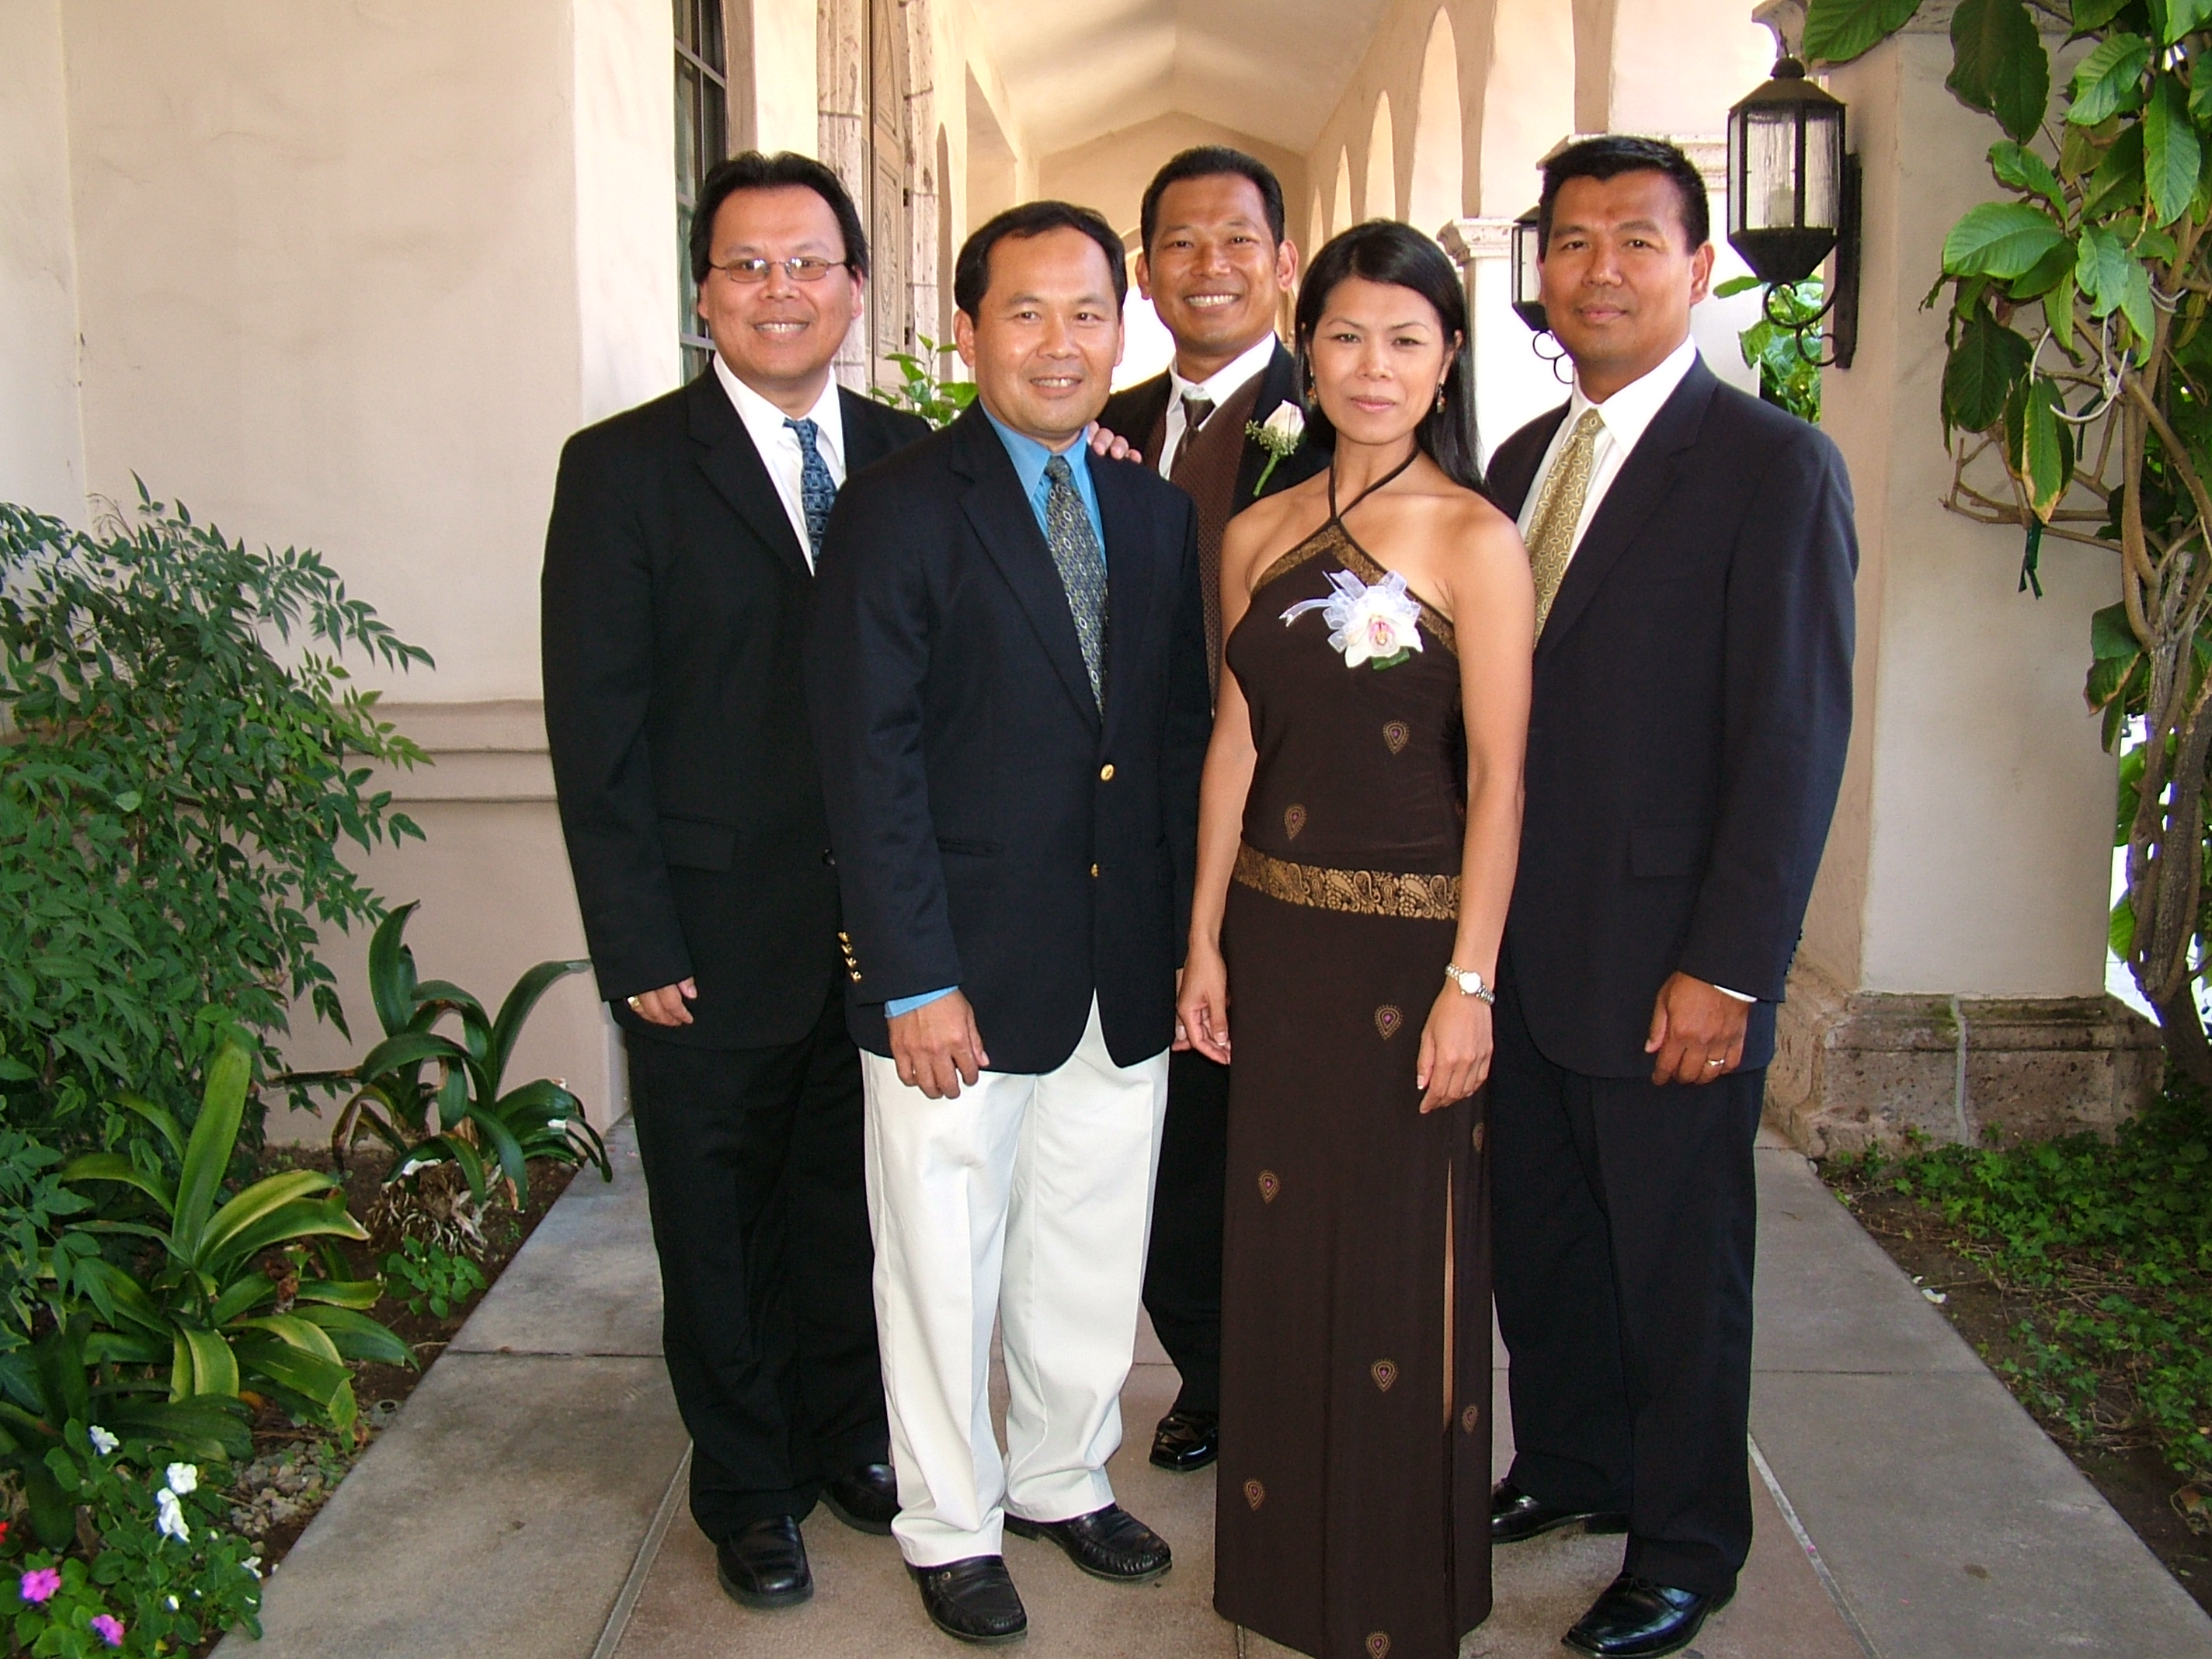 Theary Seng and brothers at Donald and Heidi Hok's wedding